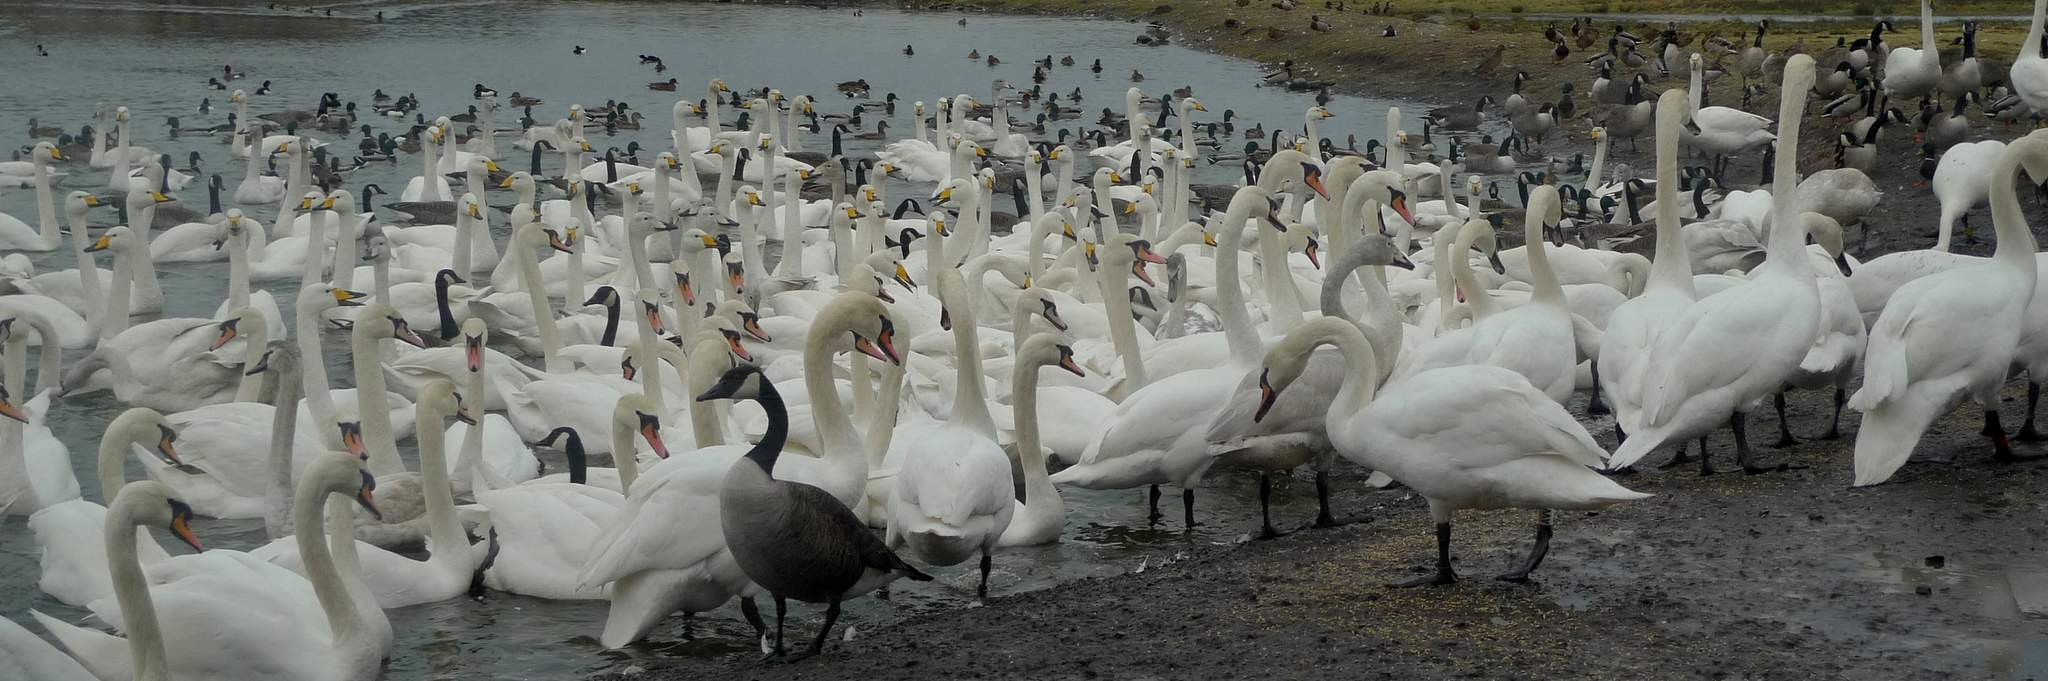 Wildlife in Dumfries and Galloway